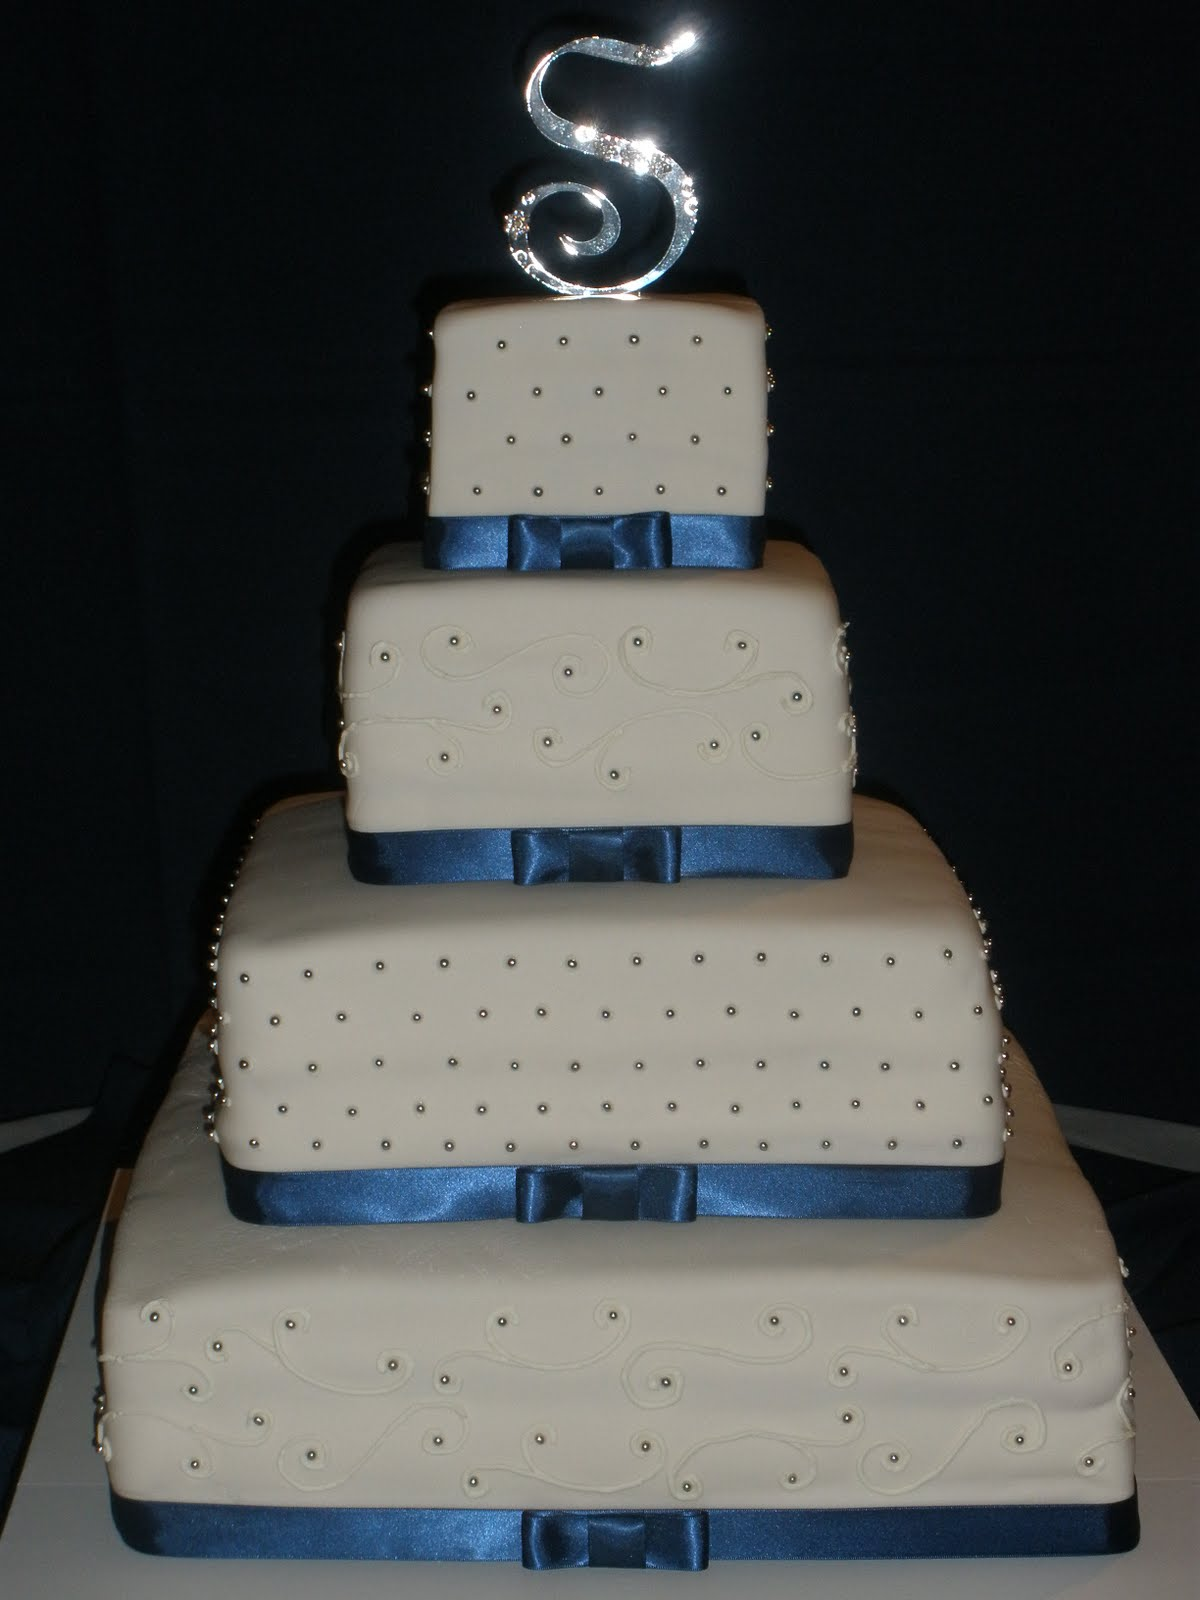 Remarkable Blue and Silver Wedding Cakes 1200 x 1600 · 105 kB · jpeg